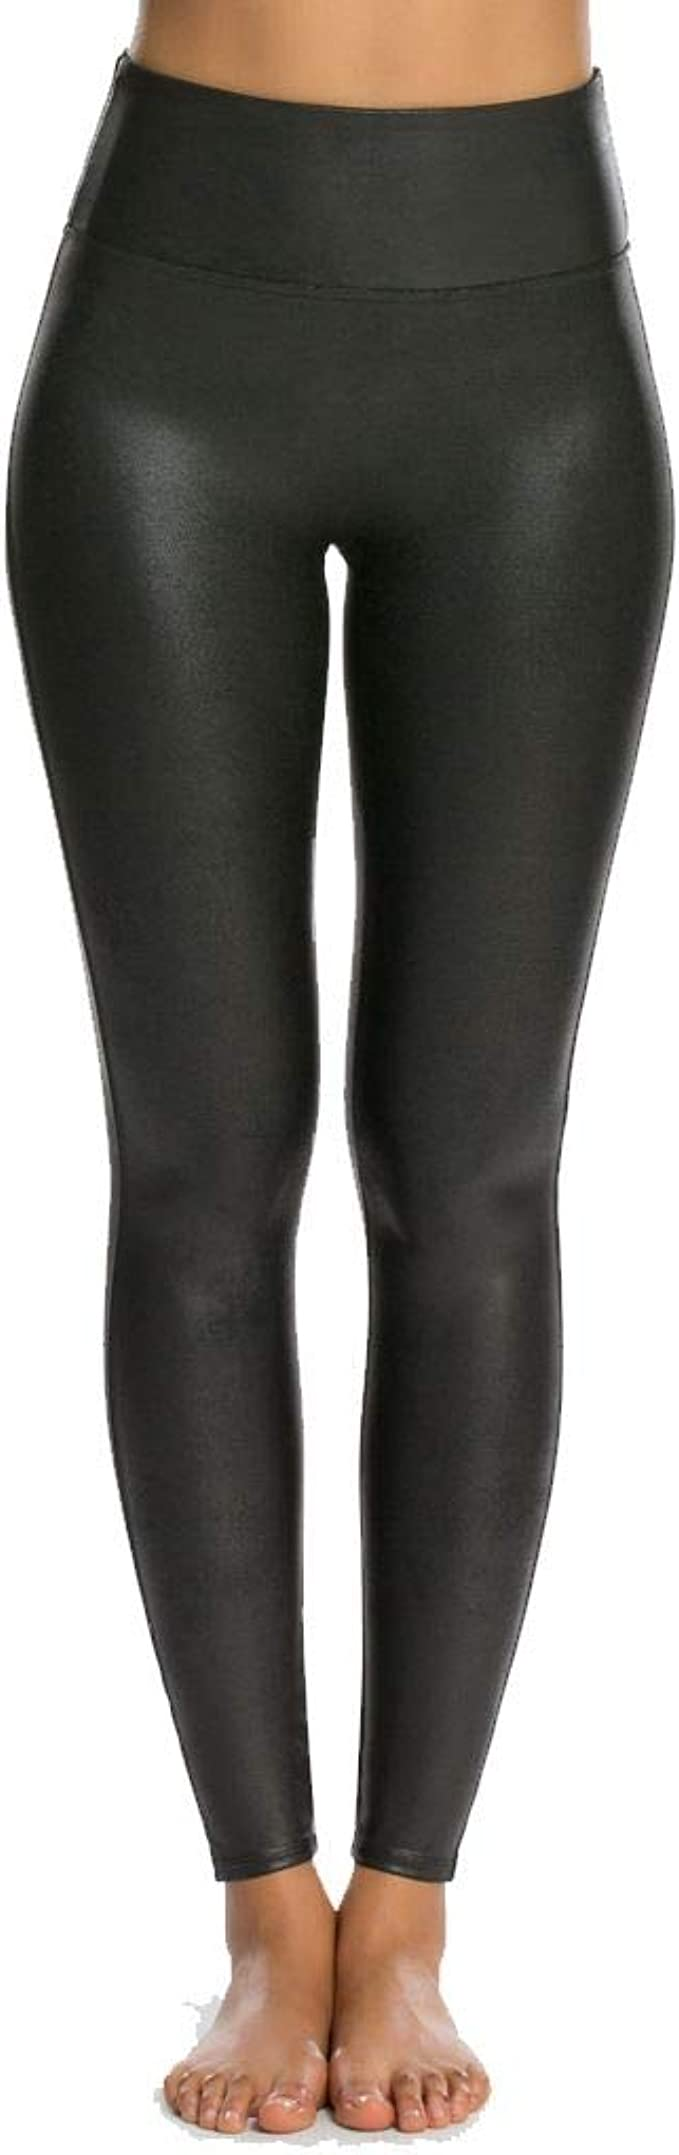 SPANX Damen Shaping-Leggings in Leder-Optik Leggings Shapewear